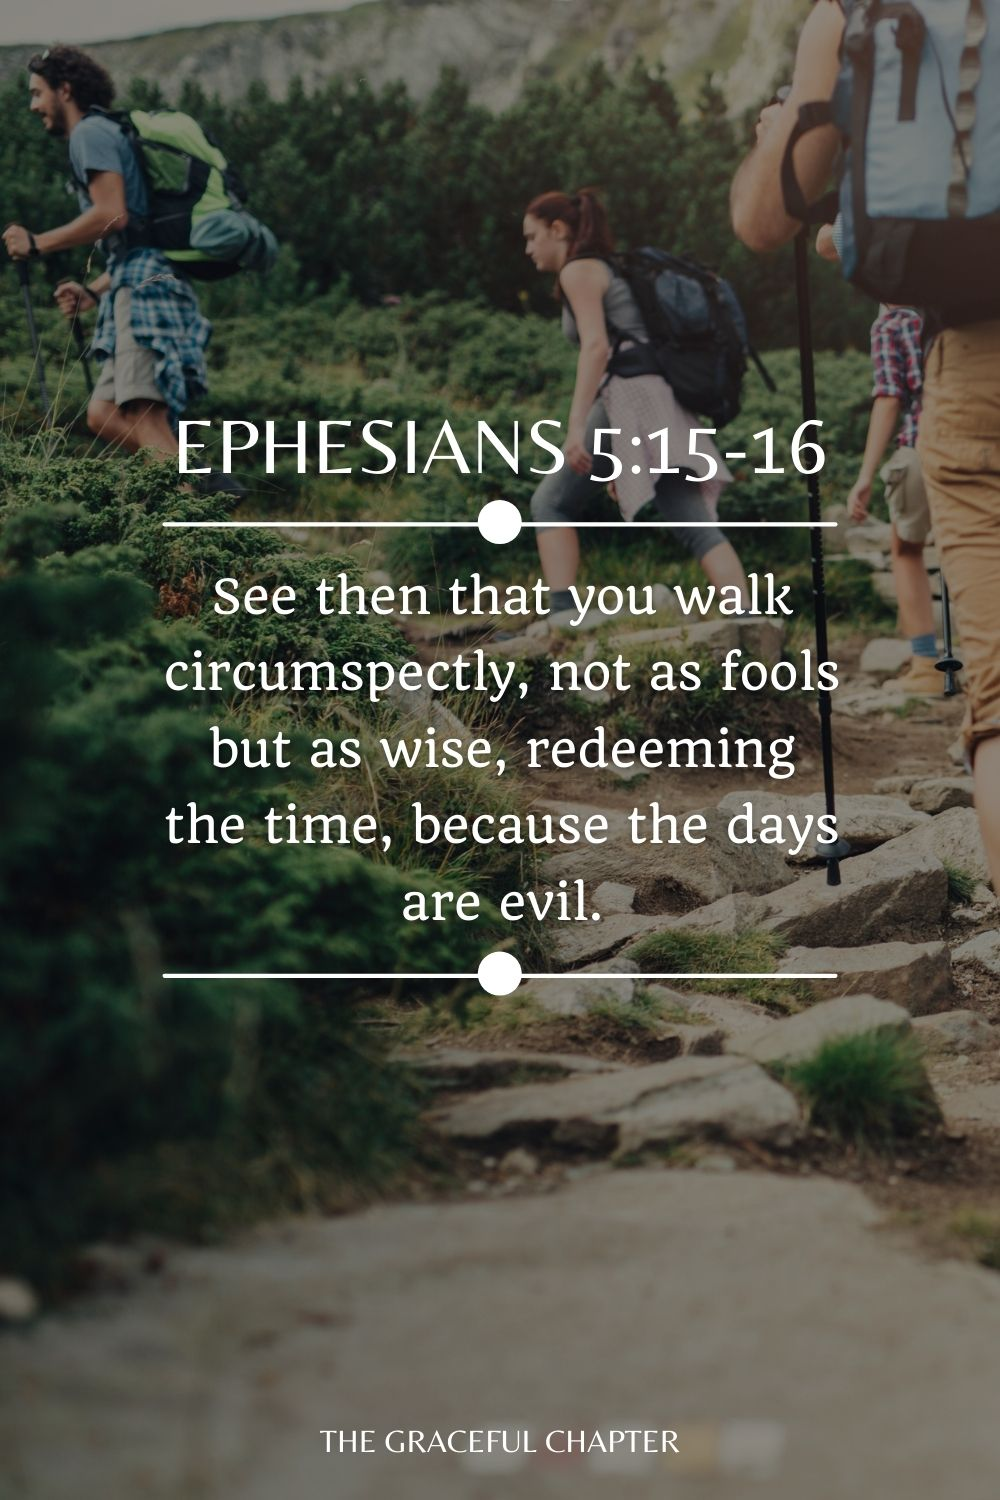 See then that you walk circumspectly, not as fools but as wise, redeeming the time, because the days are evil. Ephesians 5:15-16